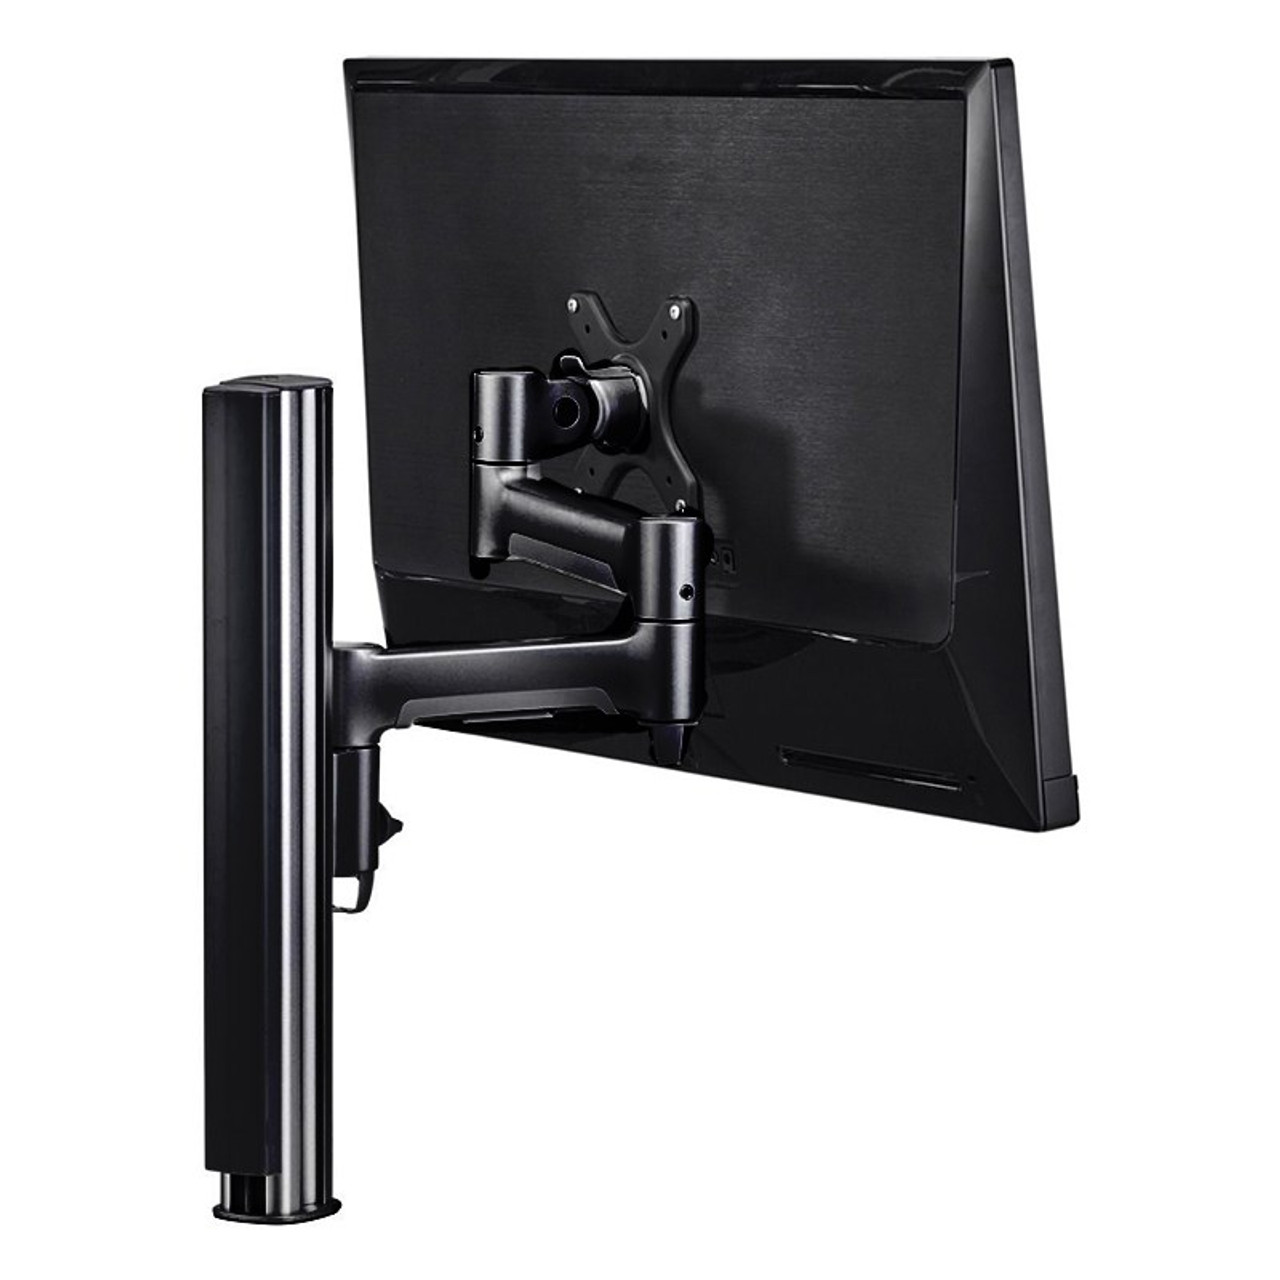 Image for Atdec AWMS-4640 400mm Post Single Monitor Mount w/ Grommet - Matte Black CX Computer Superstore